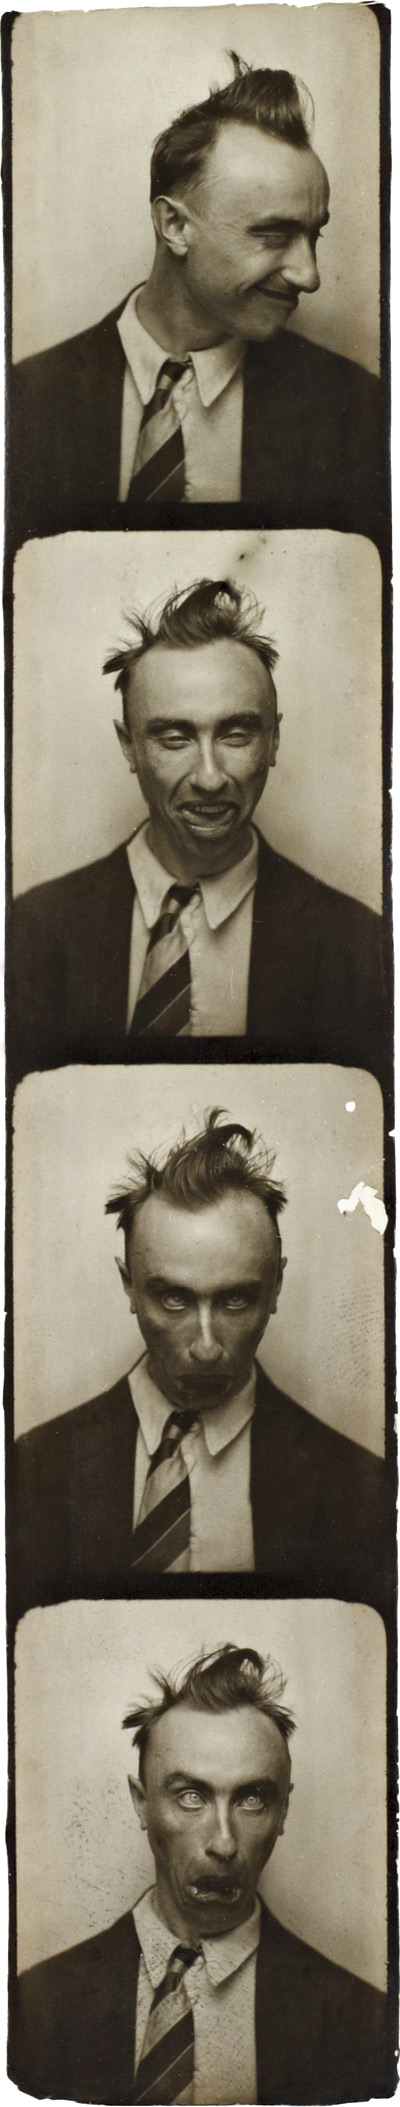 Yves Tanguy. 'Selfportrait in a Photobooth' c. 1929